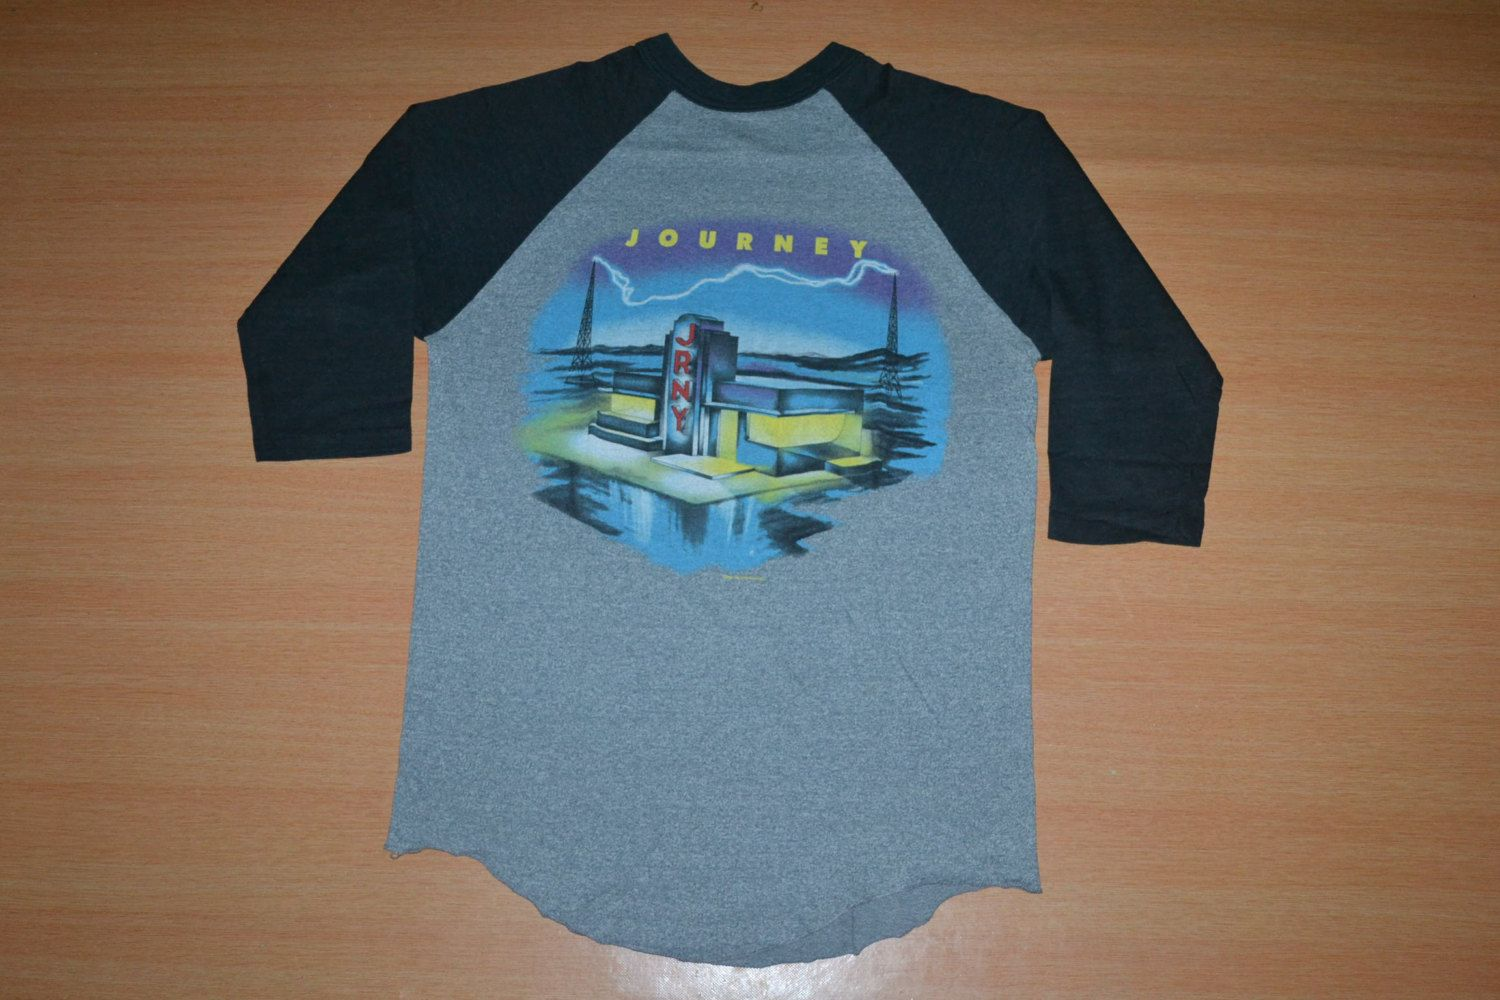 6c93fd0dd3a1 Vintage 1986 JOURNEY Raised On Radio World Tour Concert promo very rare 90s  80s T-shirt Baseball Jersey by OldSchoolZone on Etsy